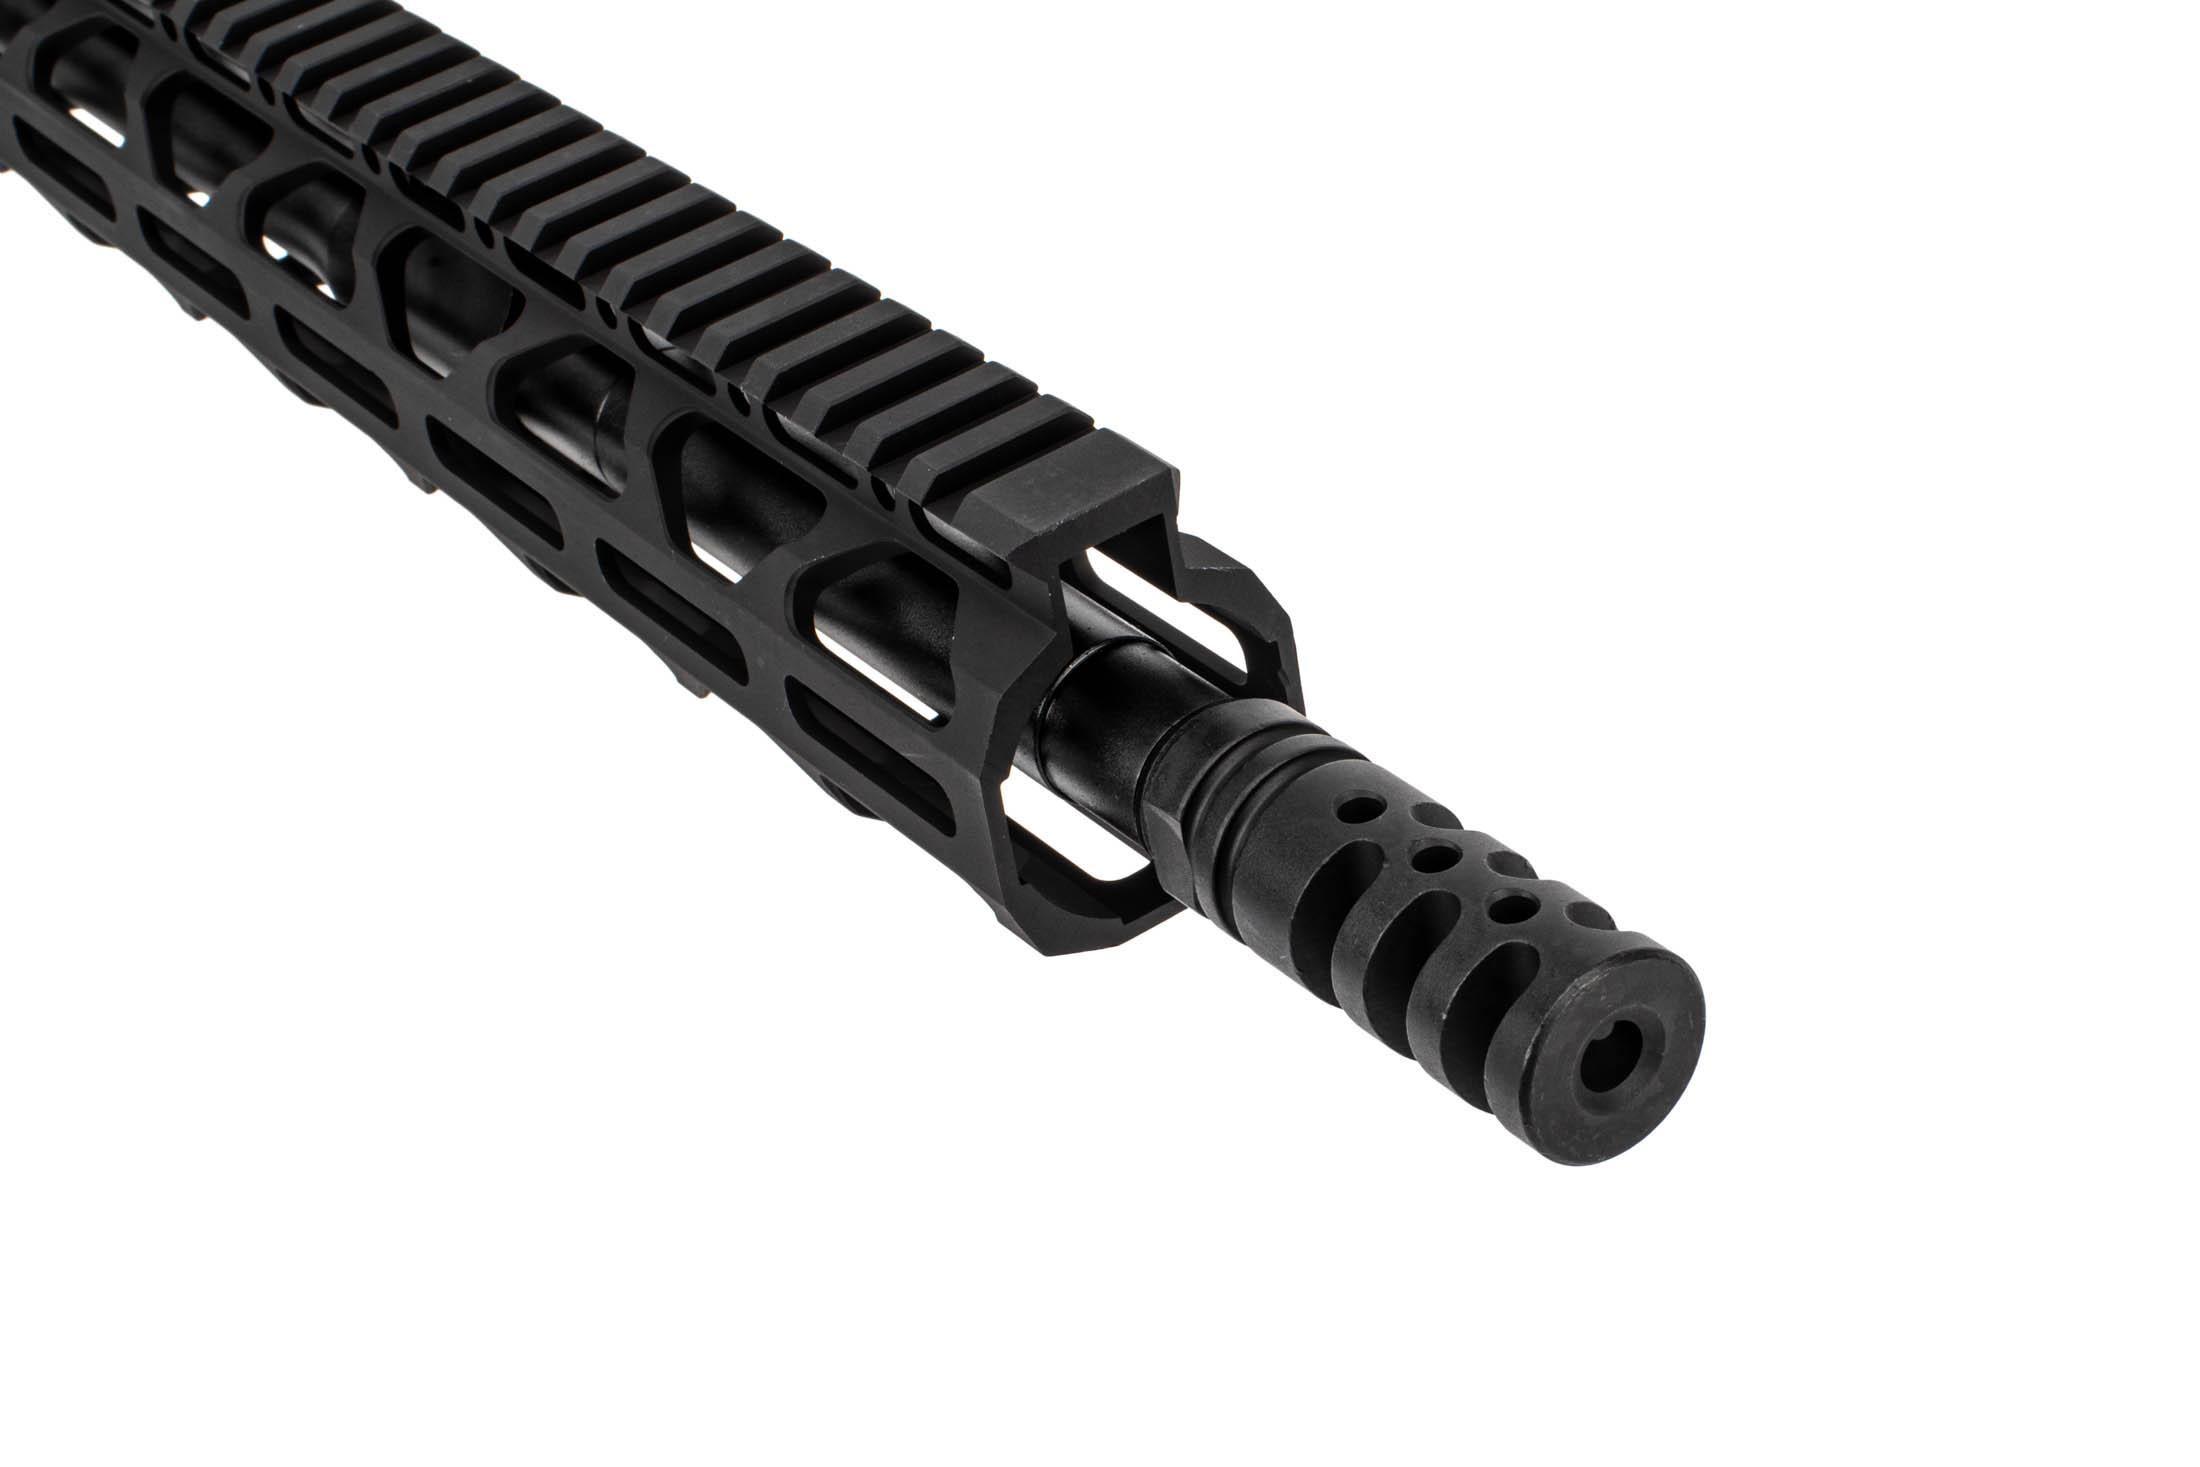 The Radical Firearms AR15 complete upper 16 inch features the zero impulse muzzle brake